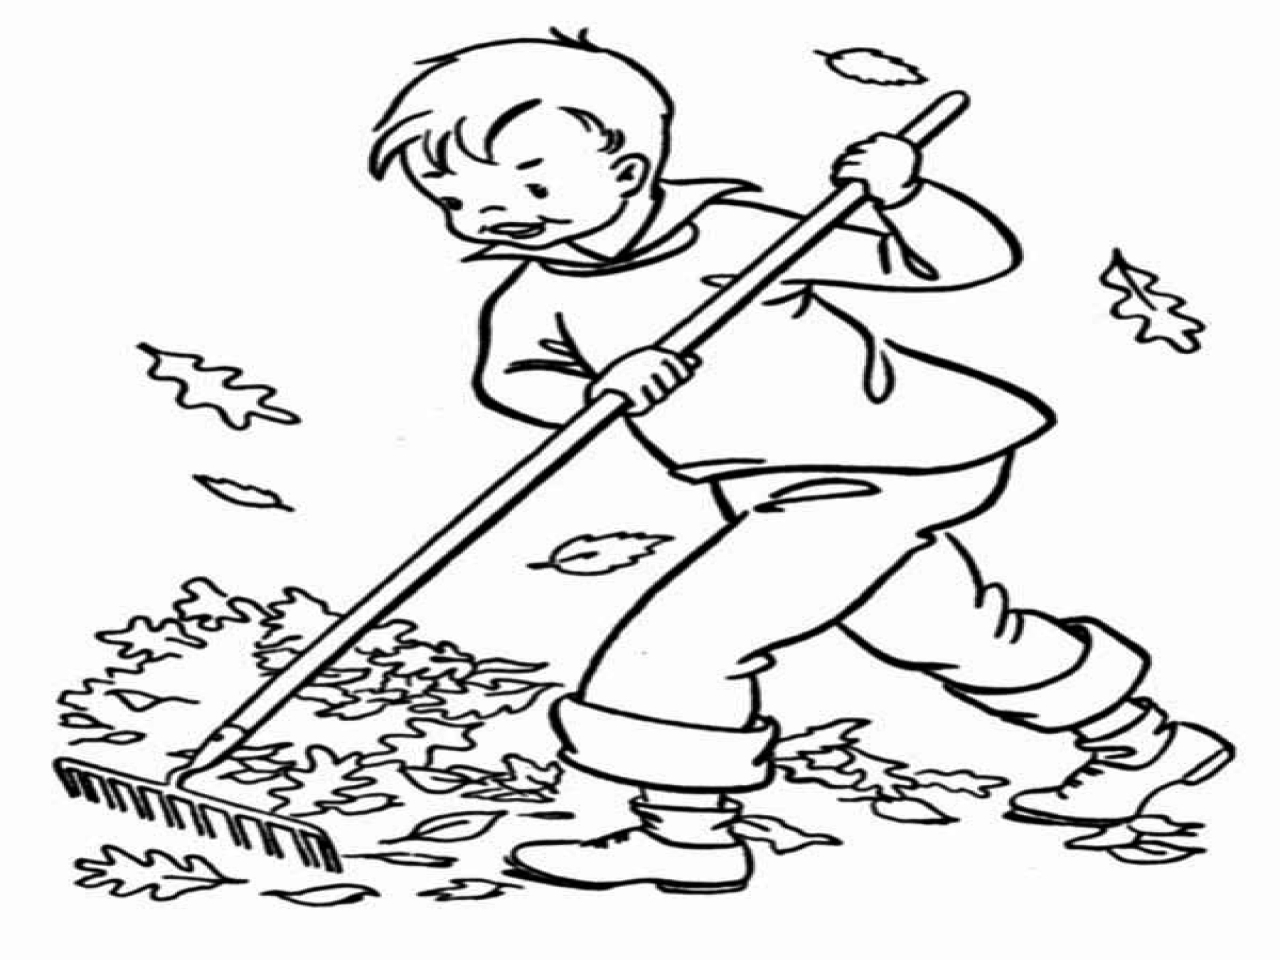 1280x960 Best Of Coloring Pages Art Cleanup Collection Free Coloring Pages